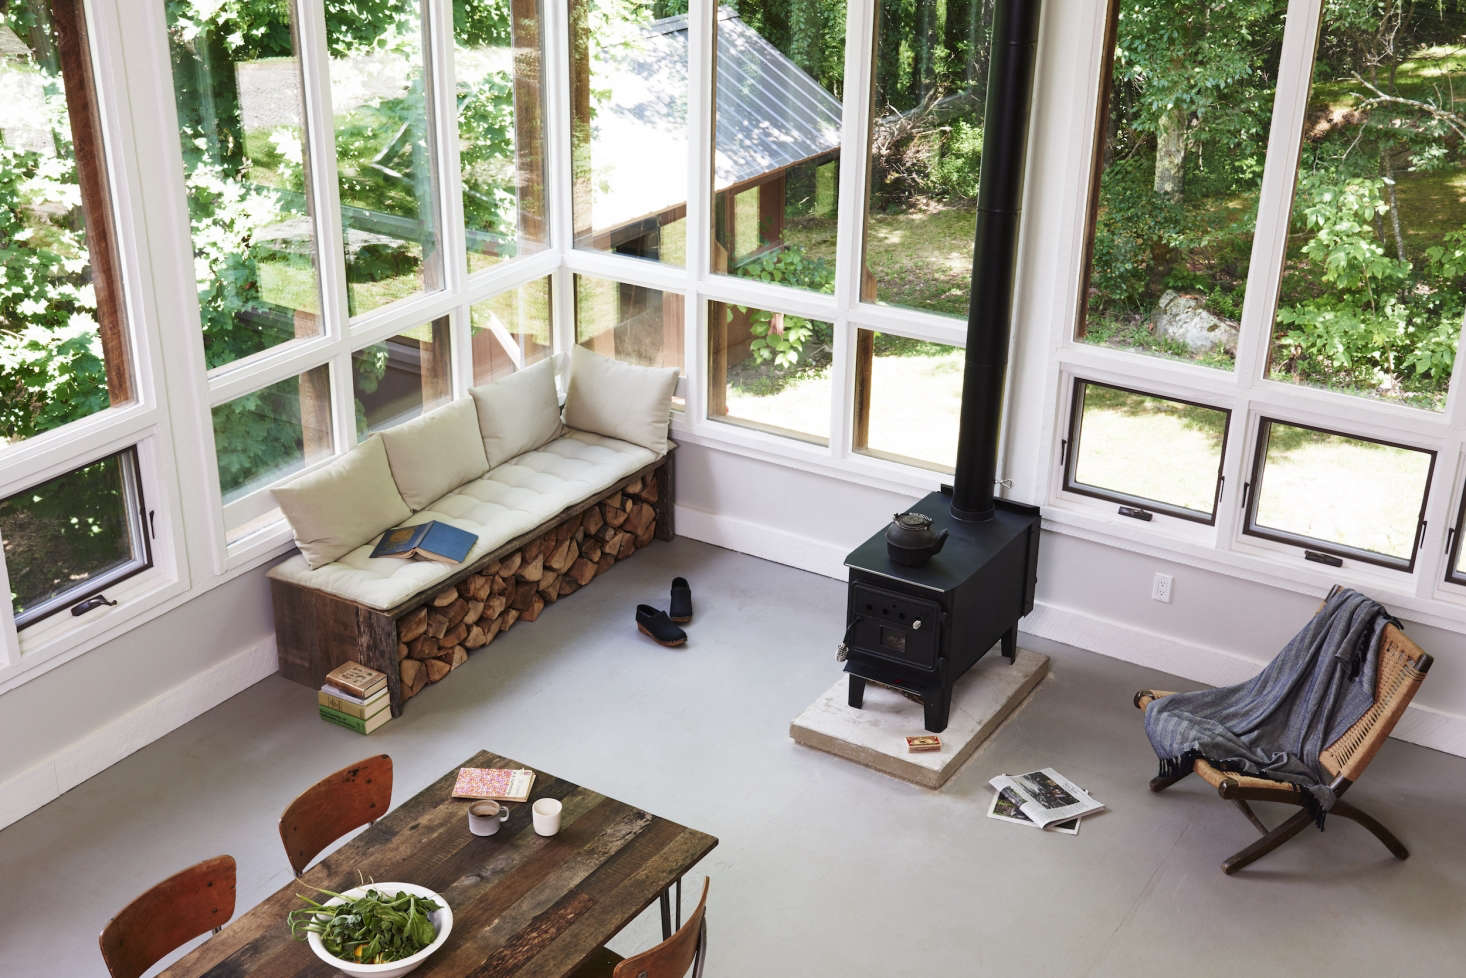 The open-plan living and dining room.